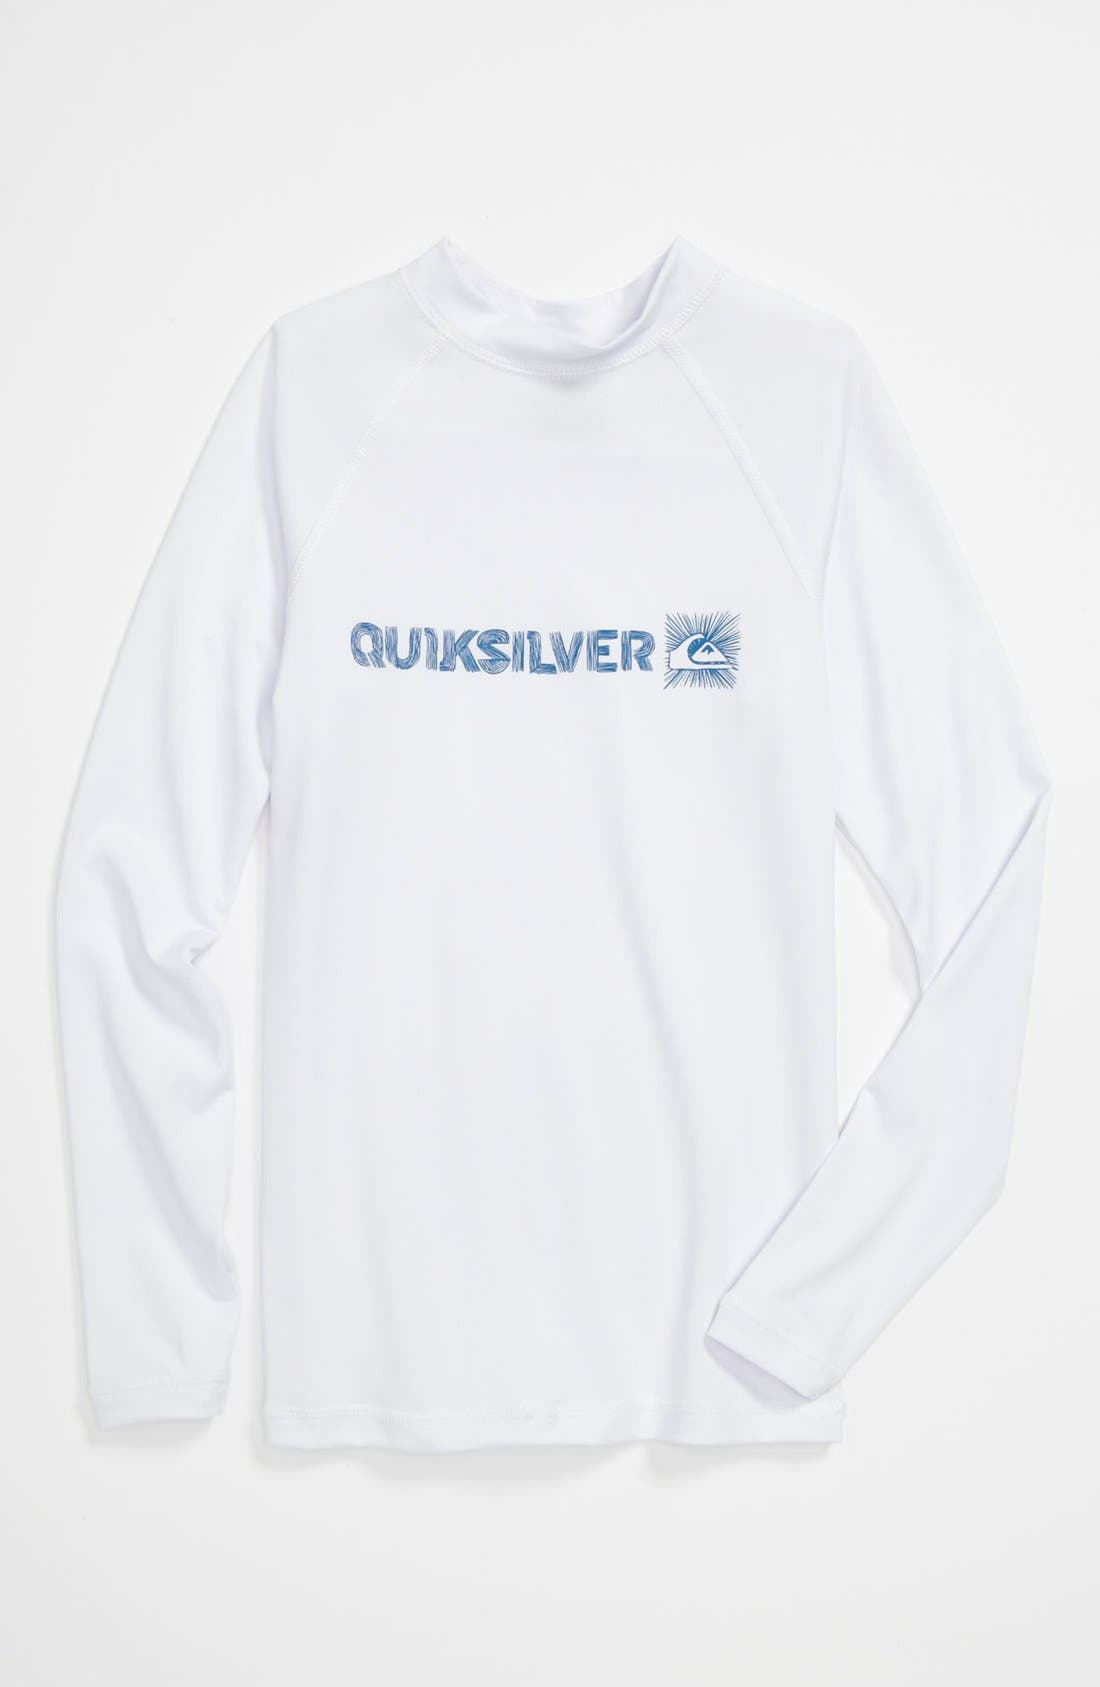 Alternate Image 1 Selected - Quiksilver 'Phaser' Rashguard (Big Boys)